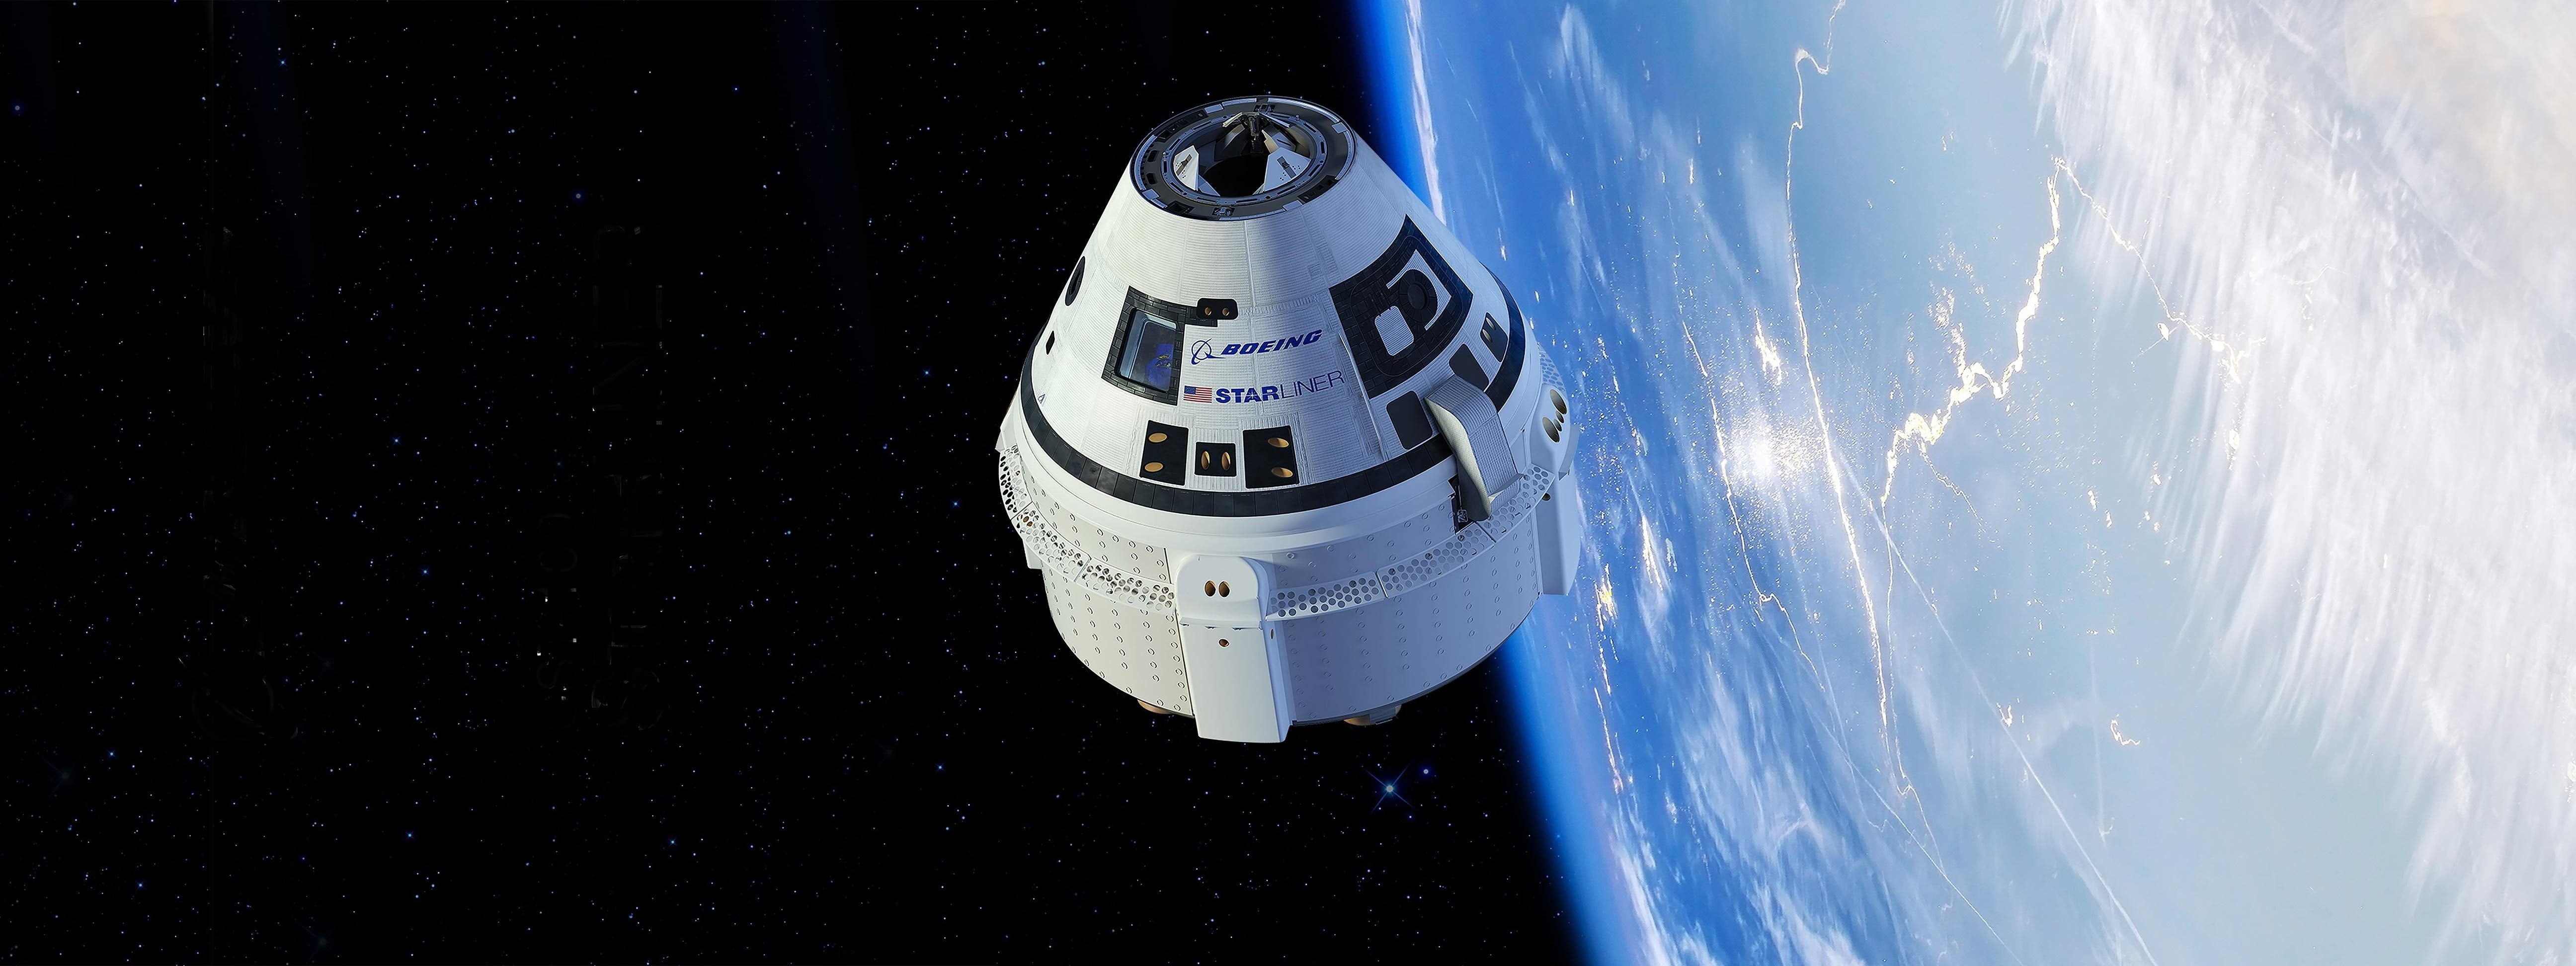 SpaceX's response to Crew Dragon explosion unfairly maligned by head of NASA